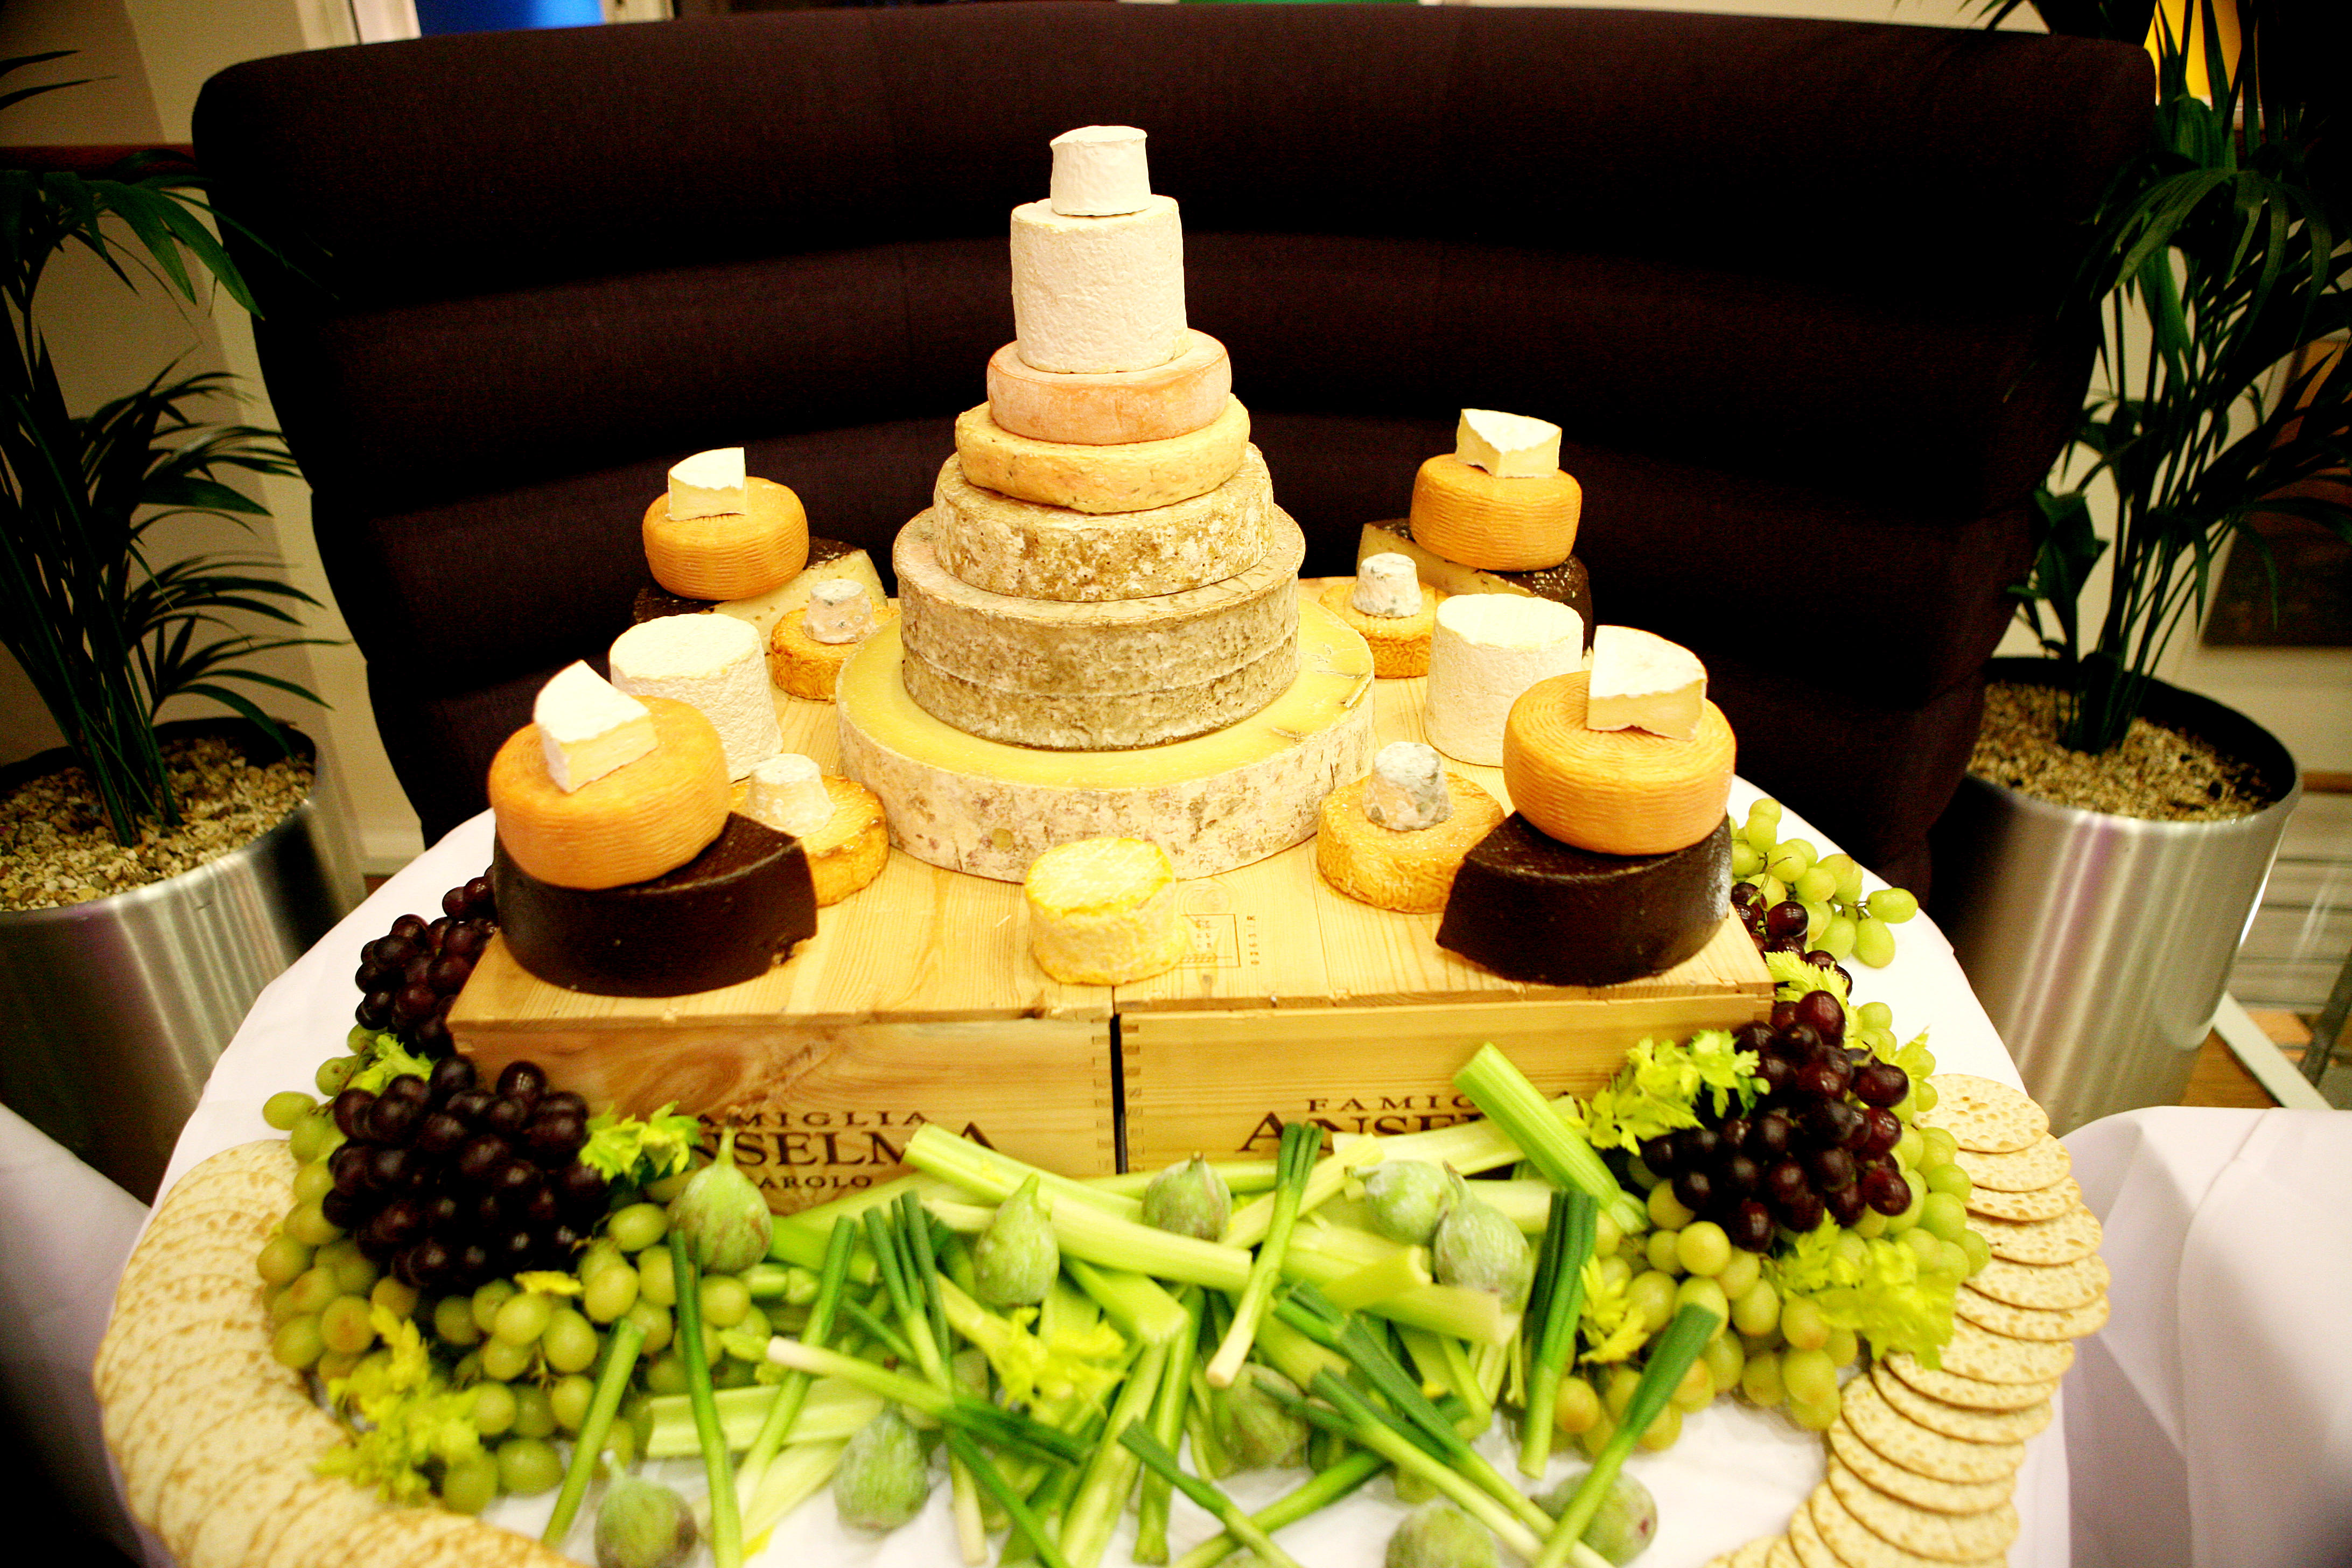 Unique wedding cake ideas: a cheese tower cake